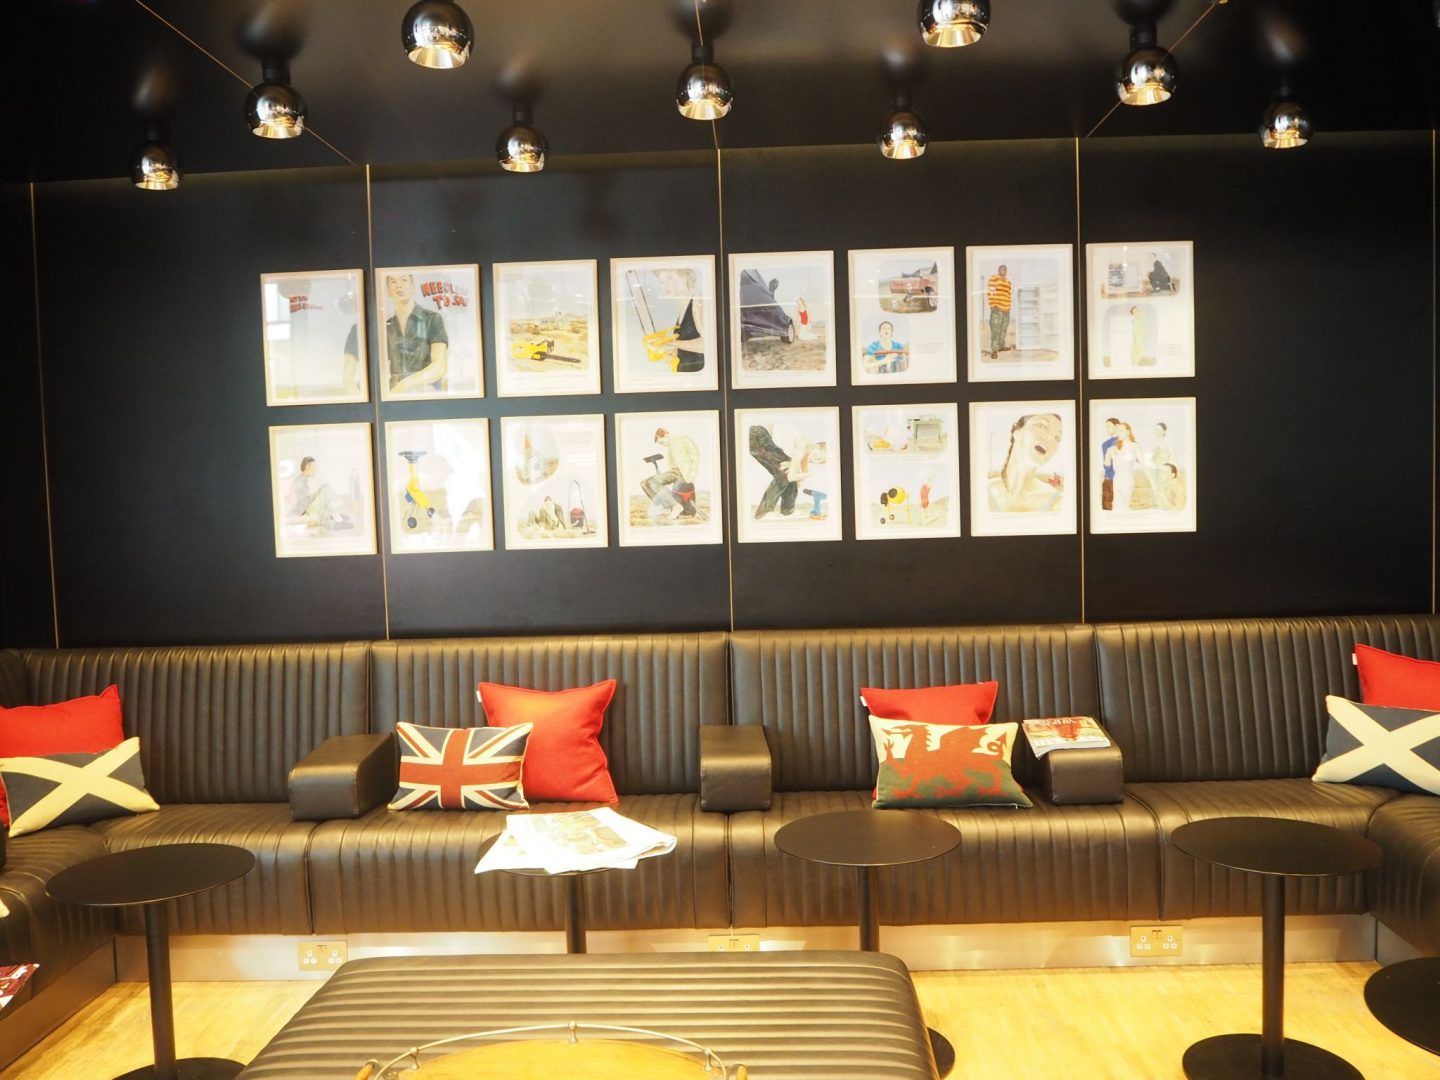 CitizenM Tower Hill Hotel Stay – A Review